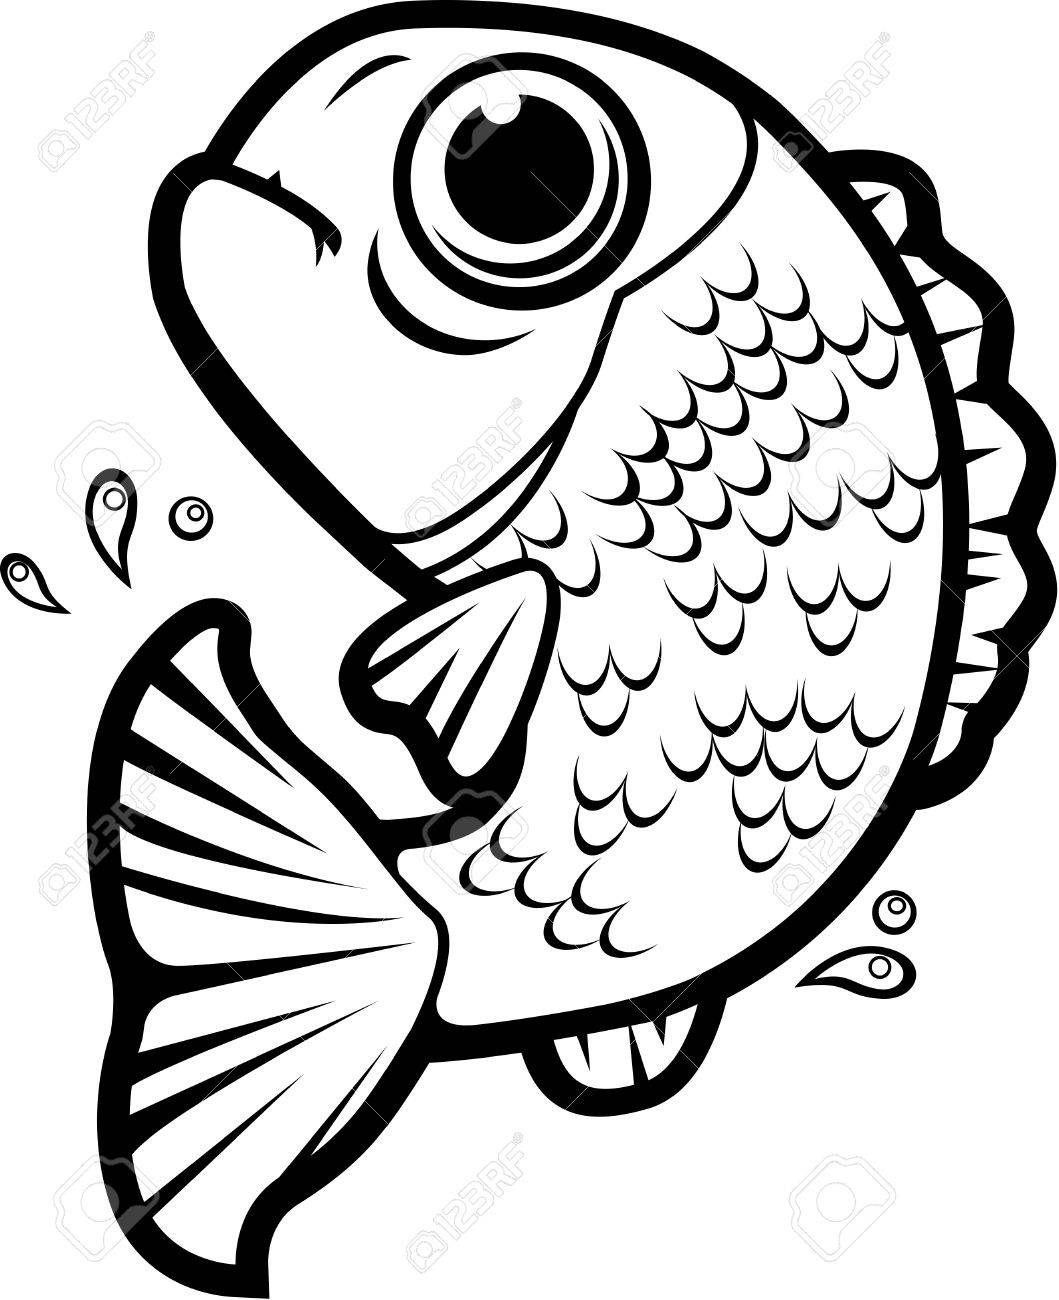 1059x1300 A Cartoon Fish Jumping Out Of The Water. Royalty Free Cliparts